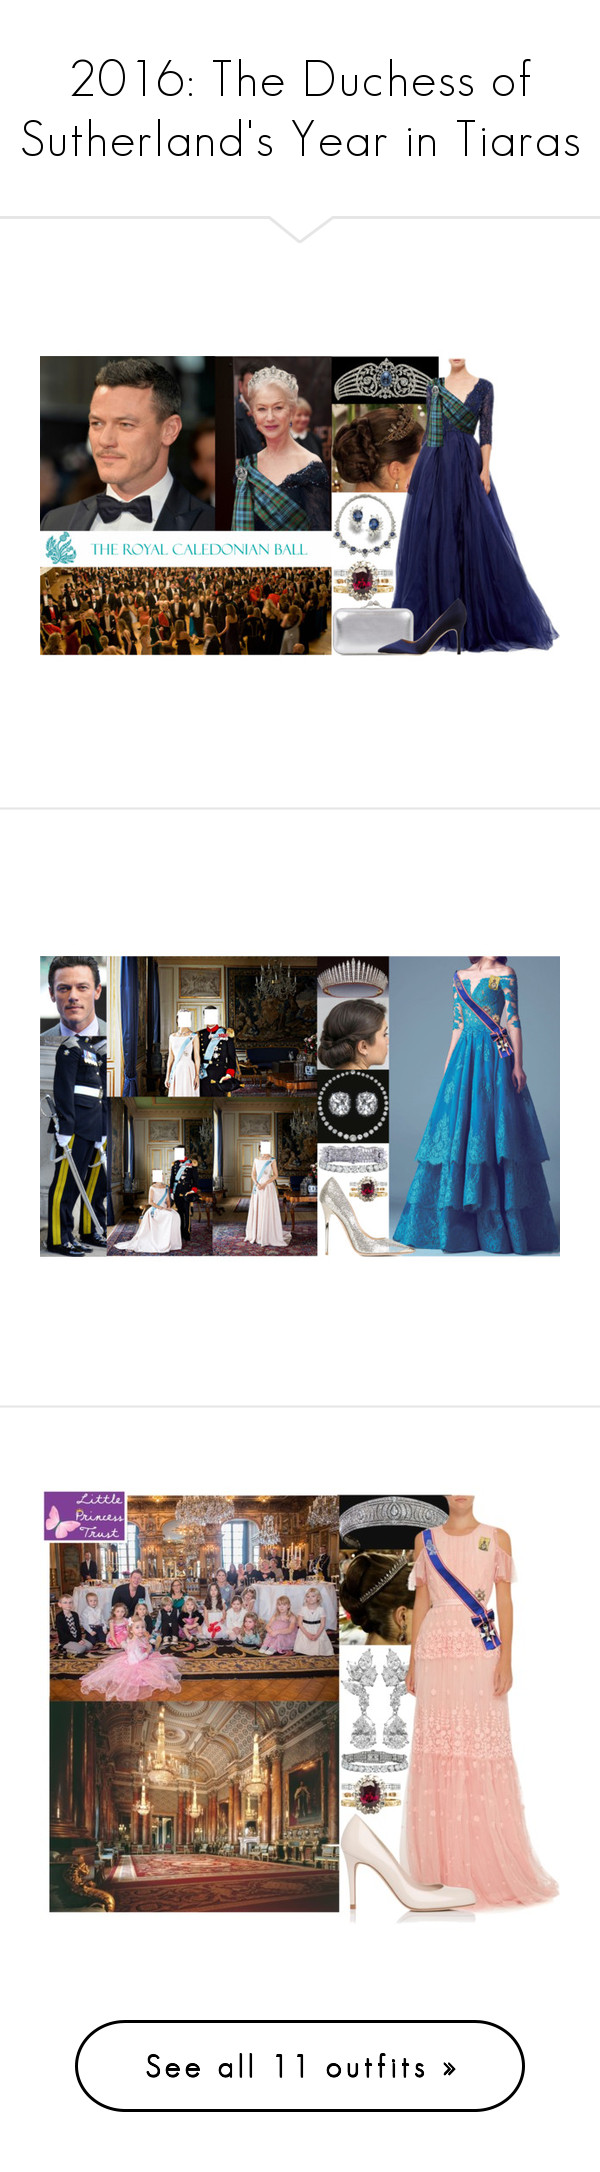 """""""2016: The Duchess of Sutherland's Year in Tiaras"""" by marywindsor ❤ liked on Polyvore featuring Monique Lhuillier, Bulgari, Alexander McQueen, Manolo Blahnik, accessories, hair accessories, tiaras, crowns, tiara crown and rose crowns"""